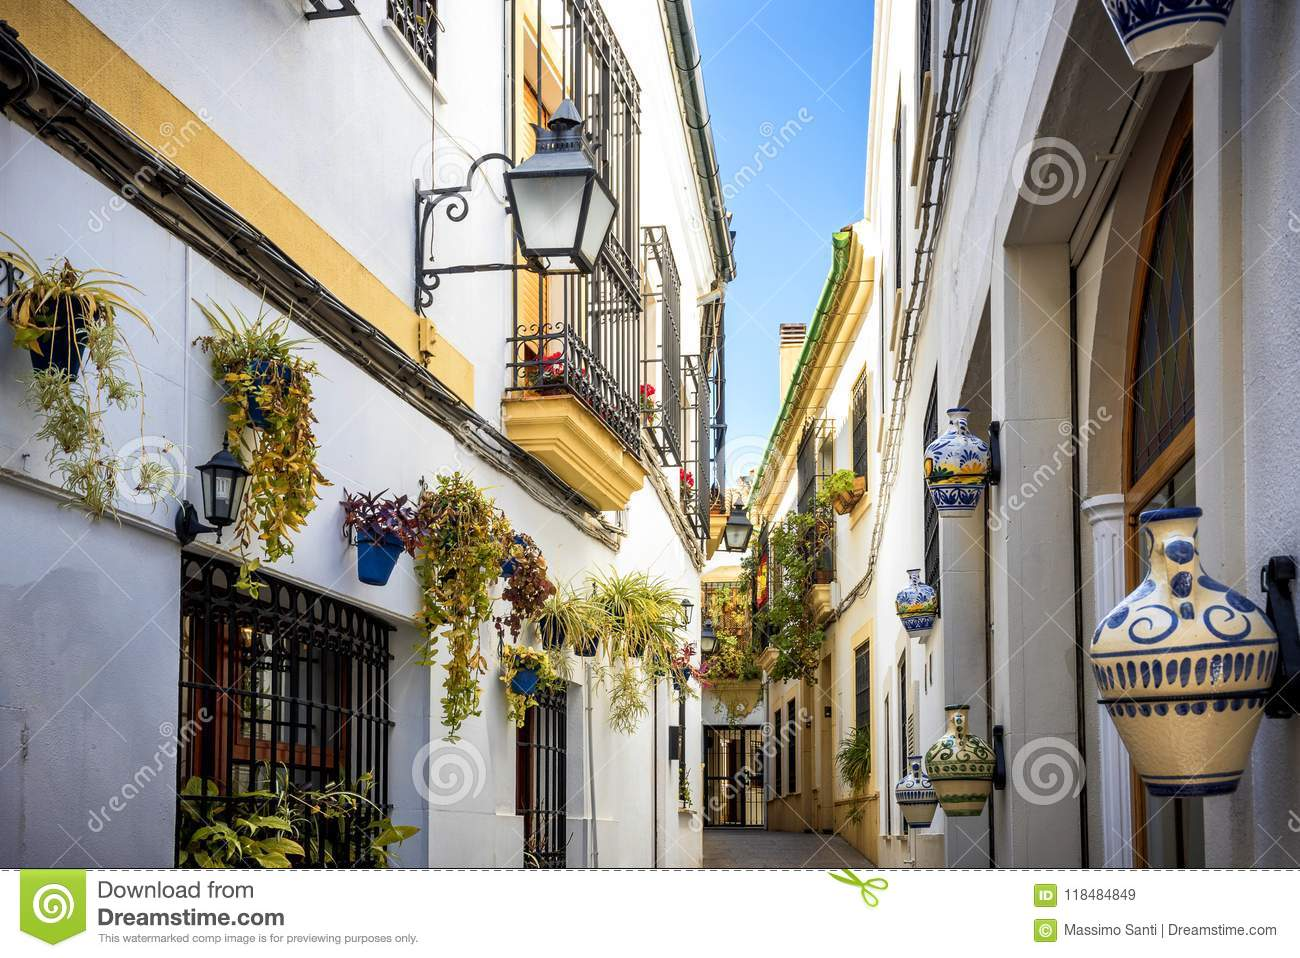 Cordoba: old typical street in the Juderia with plants and flowers. Andalucia, Spain.